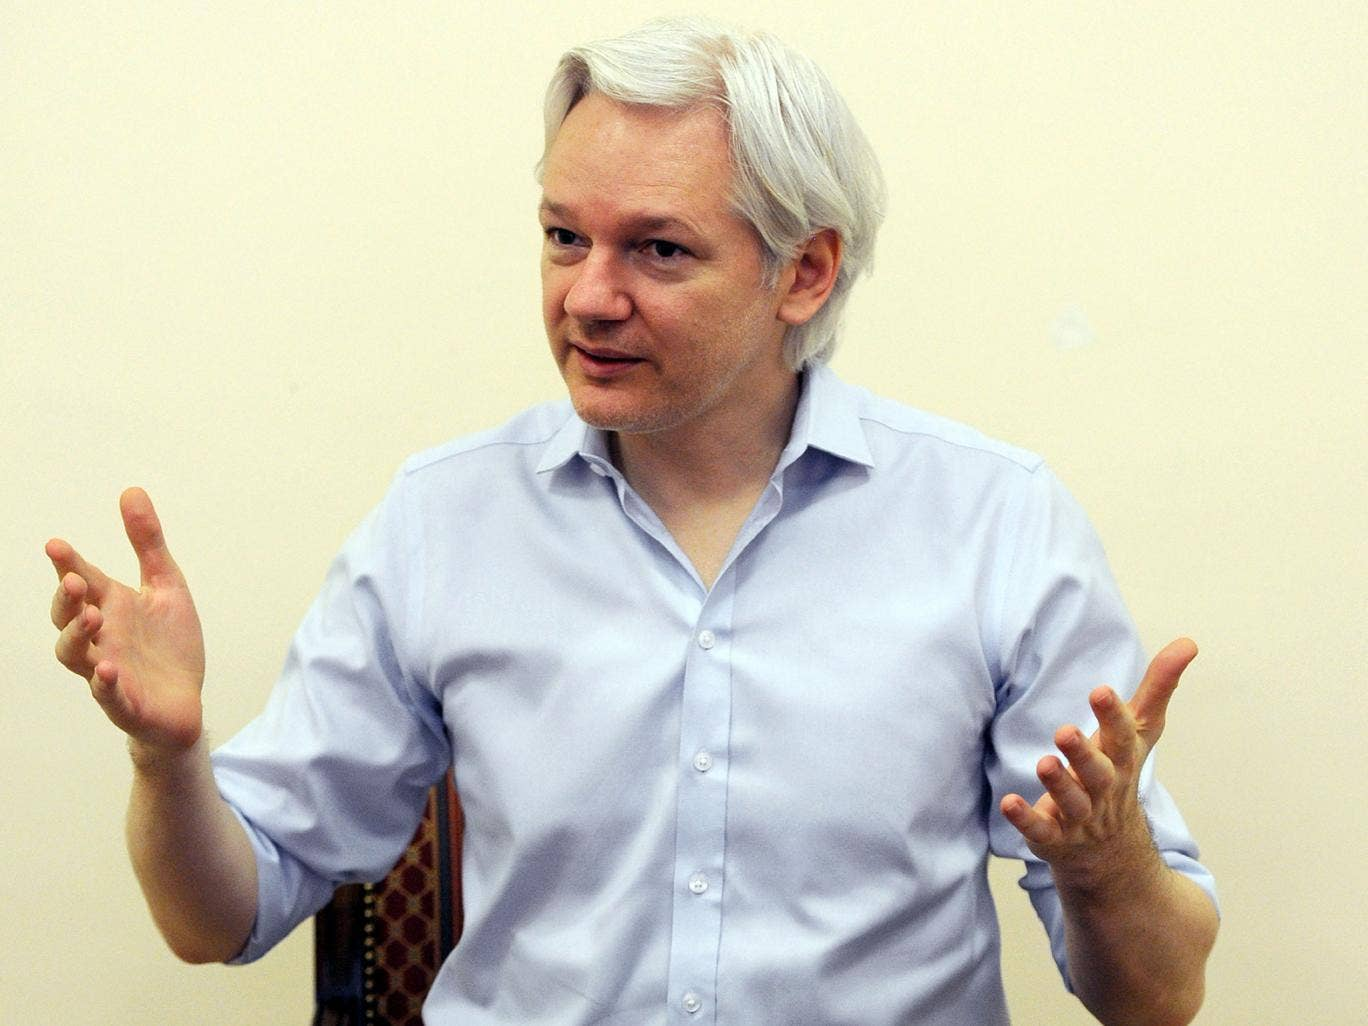 Wikileaks founder Julian Assange speaks to the media inside the Ecuadorian Embassy in London on 14 June, 2013, ahead of the first anniversary of his arrival there on 19 June, 2012